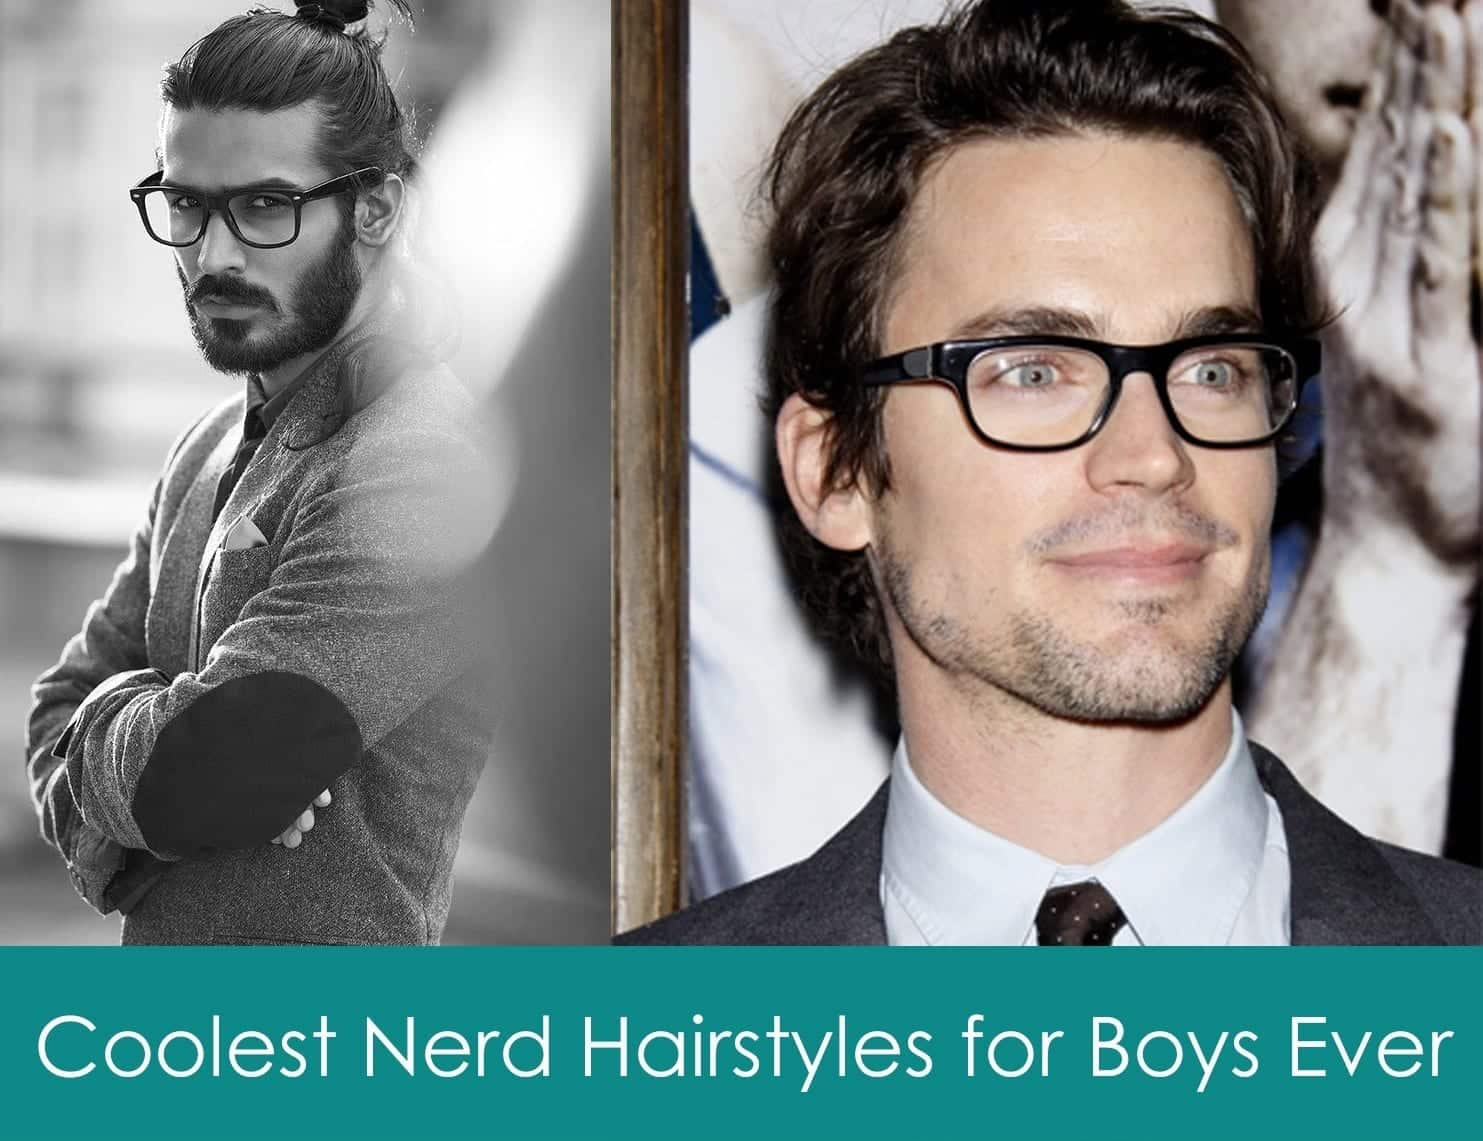 polyvore-sample-4 Cute Nerd Hairstyles for Boys - 18 Hairstyles For Nerdy Look